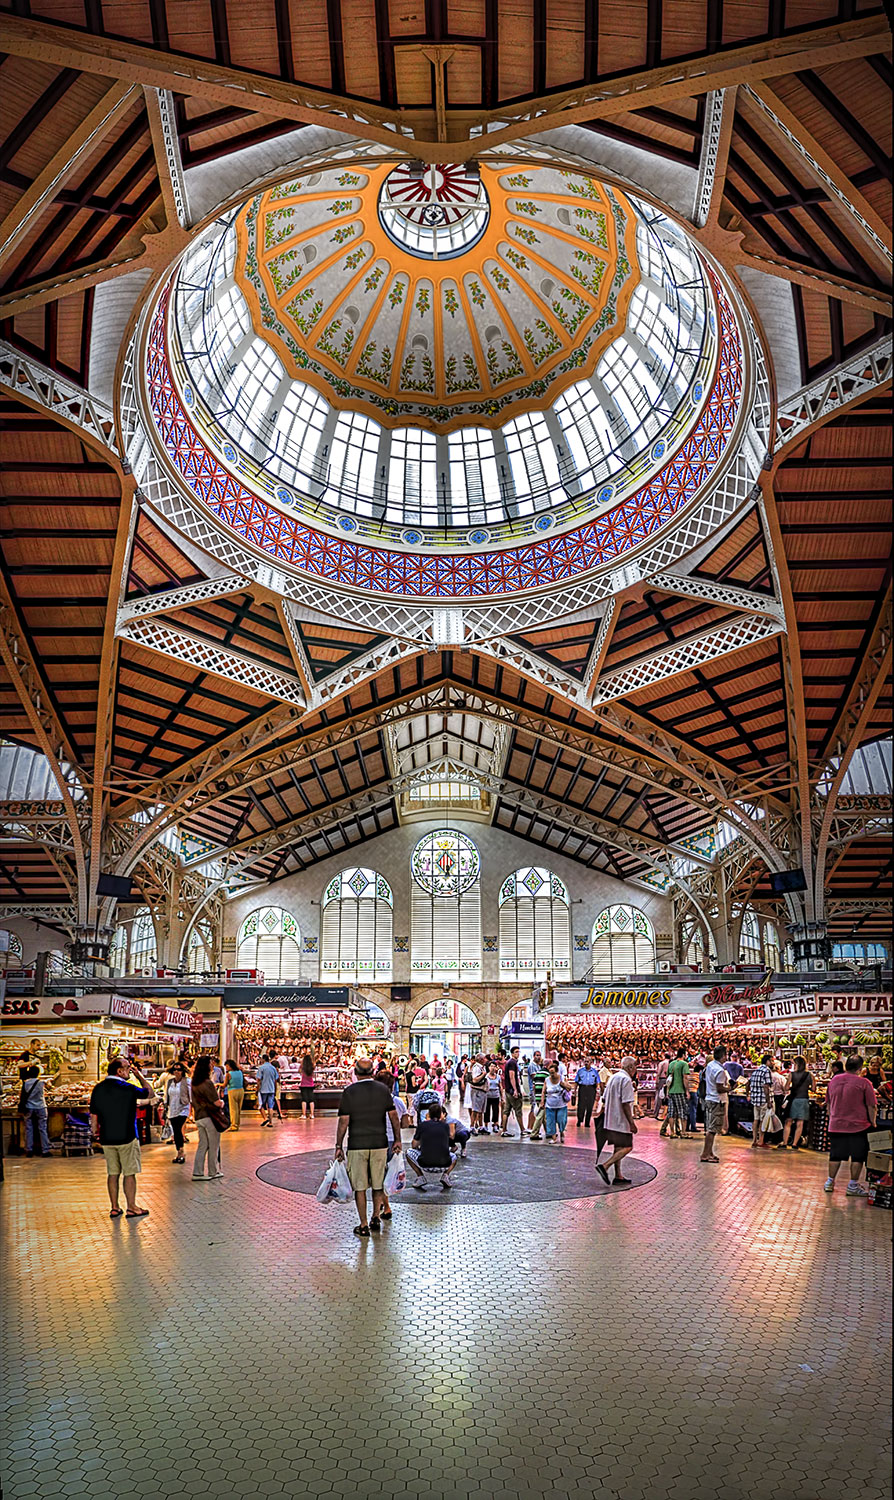 Mercado Central - Valencia, Spain (HDR Vertorama) - farbspiel photography